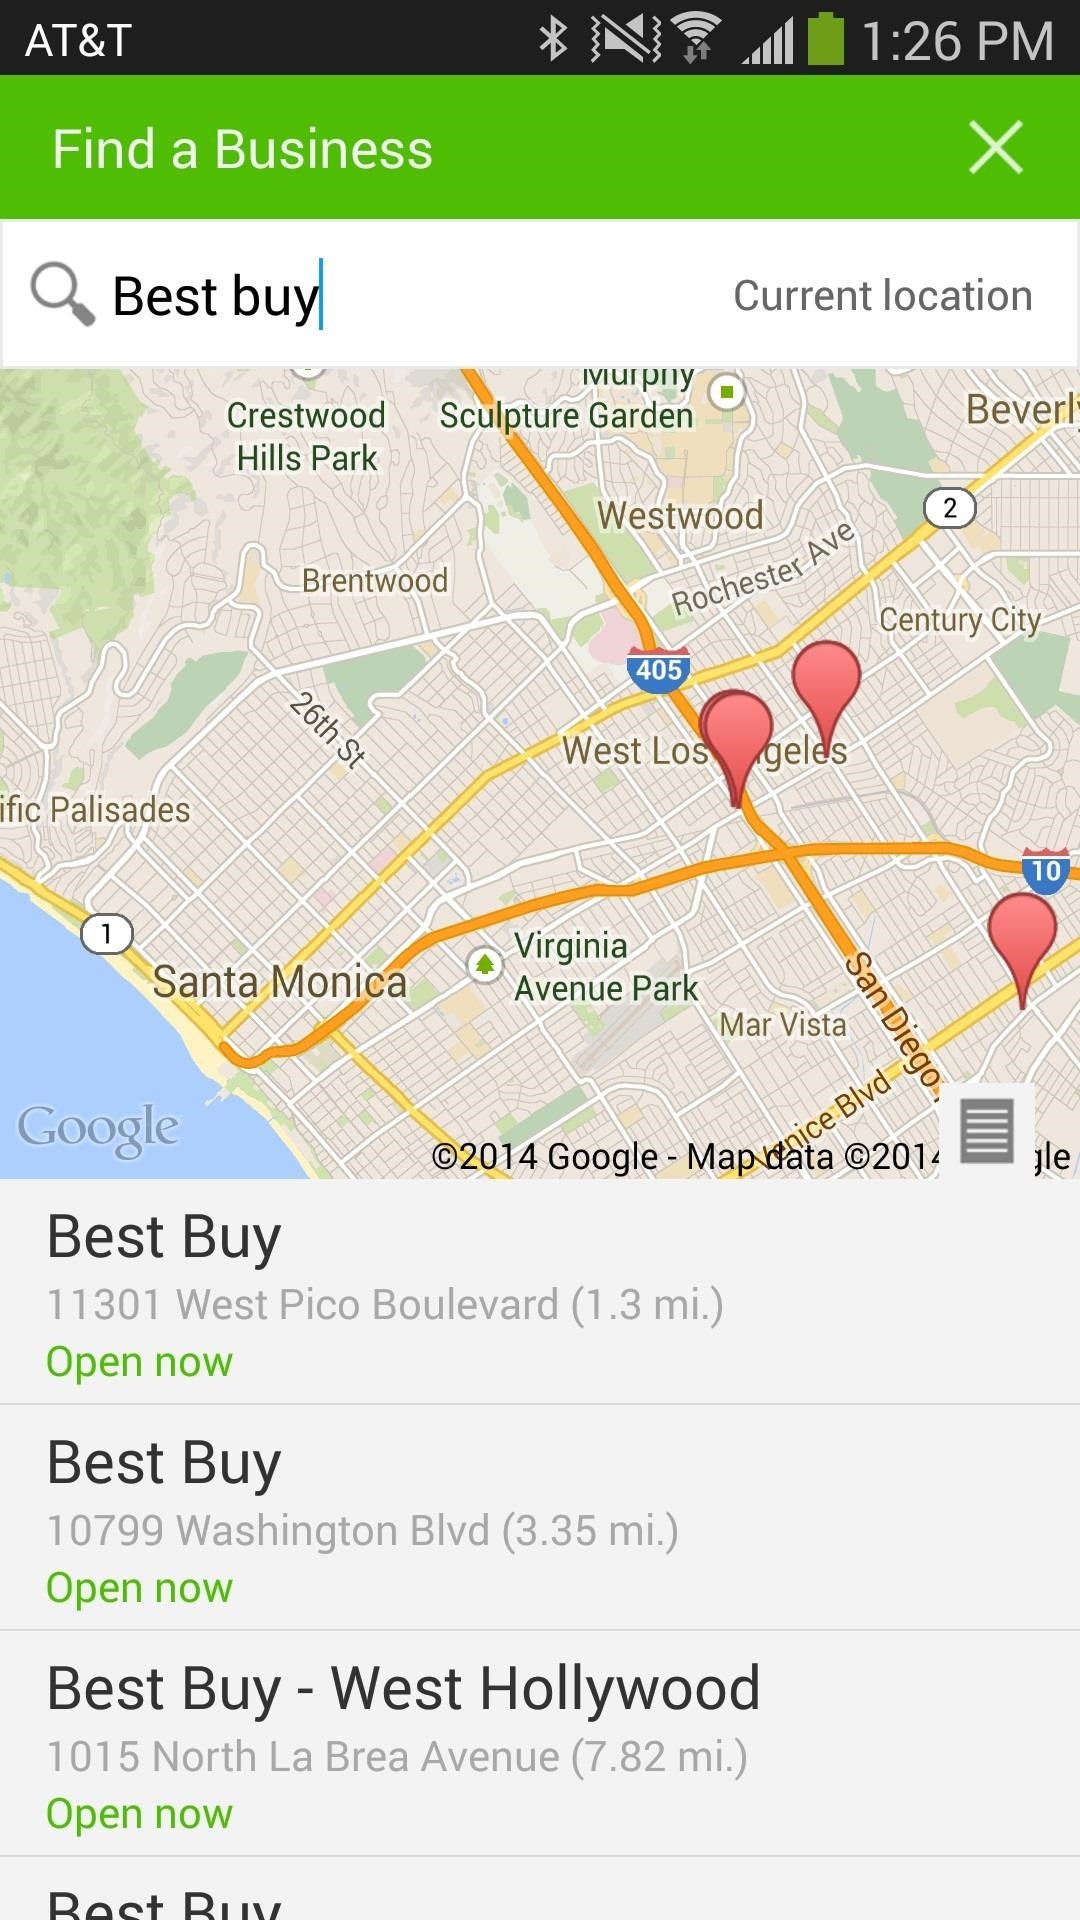 Pro Tip: How to Text Best Buy & Other Businesses for Quick Information on Gadget Availability